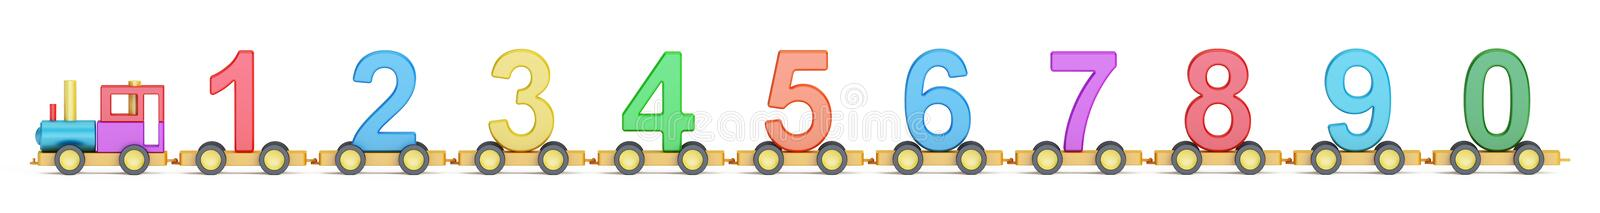 Wooden toy train with colorful numbers, 3D rendering vector illustration